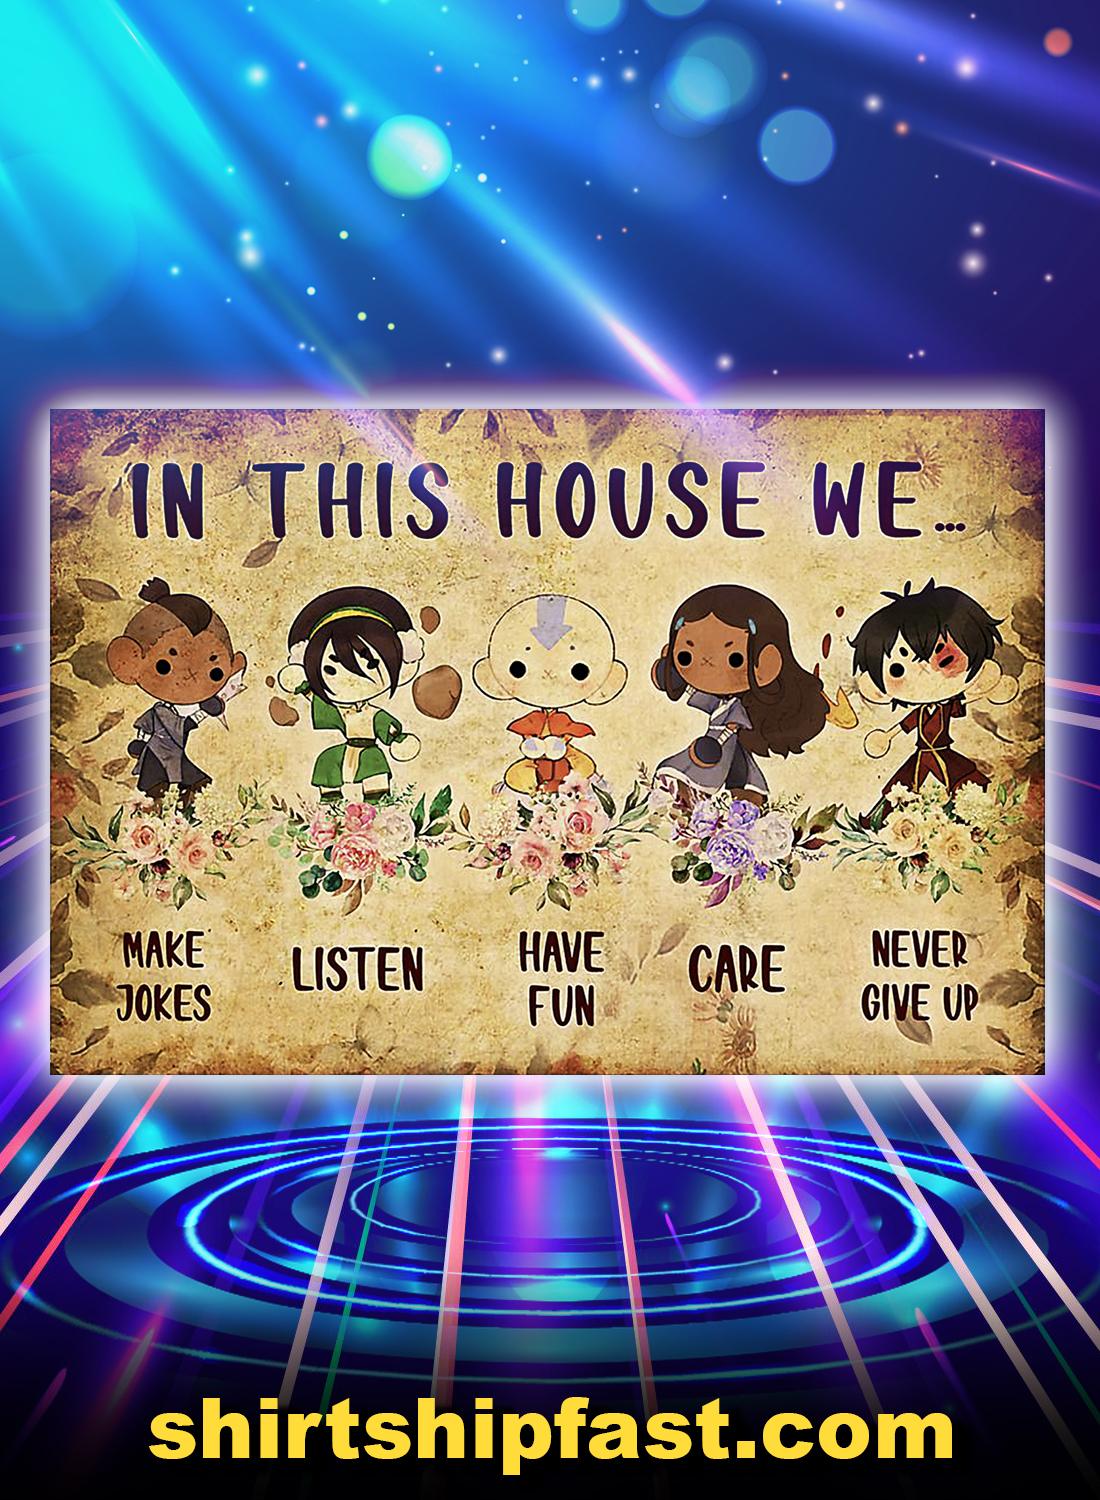 The airbender in this house we poster - A4